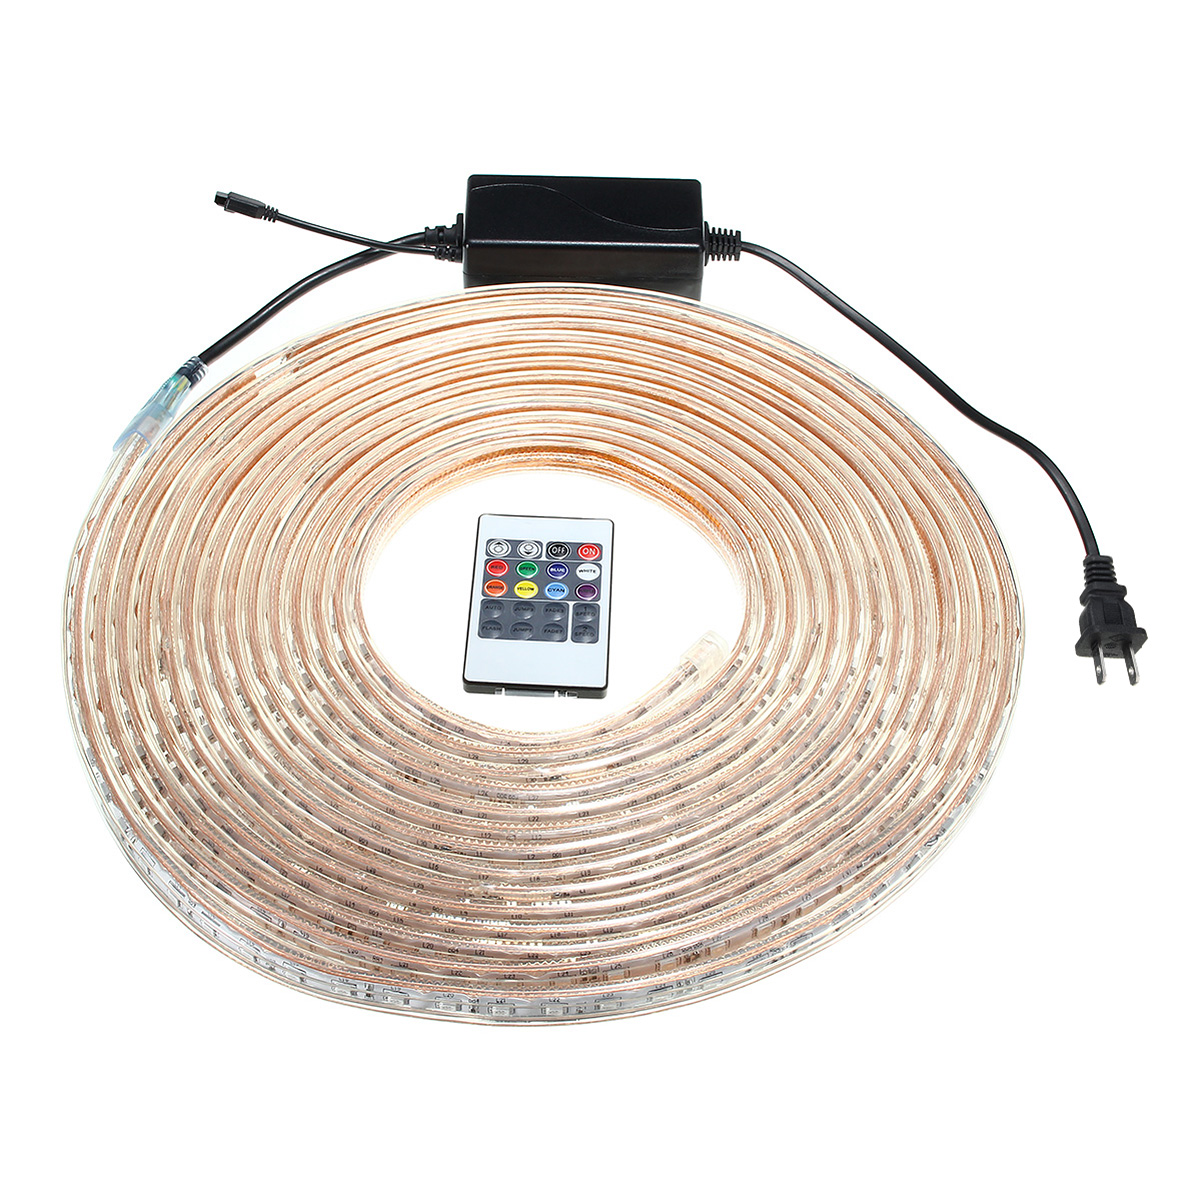 Led Rope Lights With Remote: 10/15M SMD5050 LED RGB Flexible Rope Outdoor Waterproof